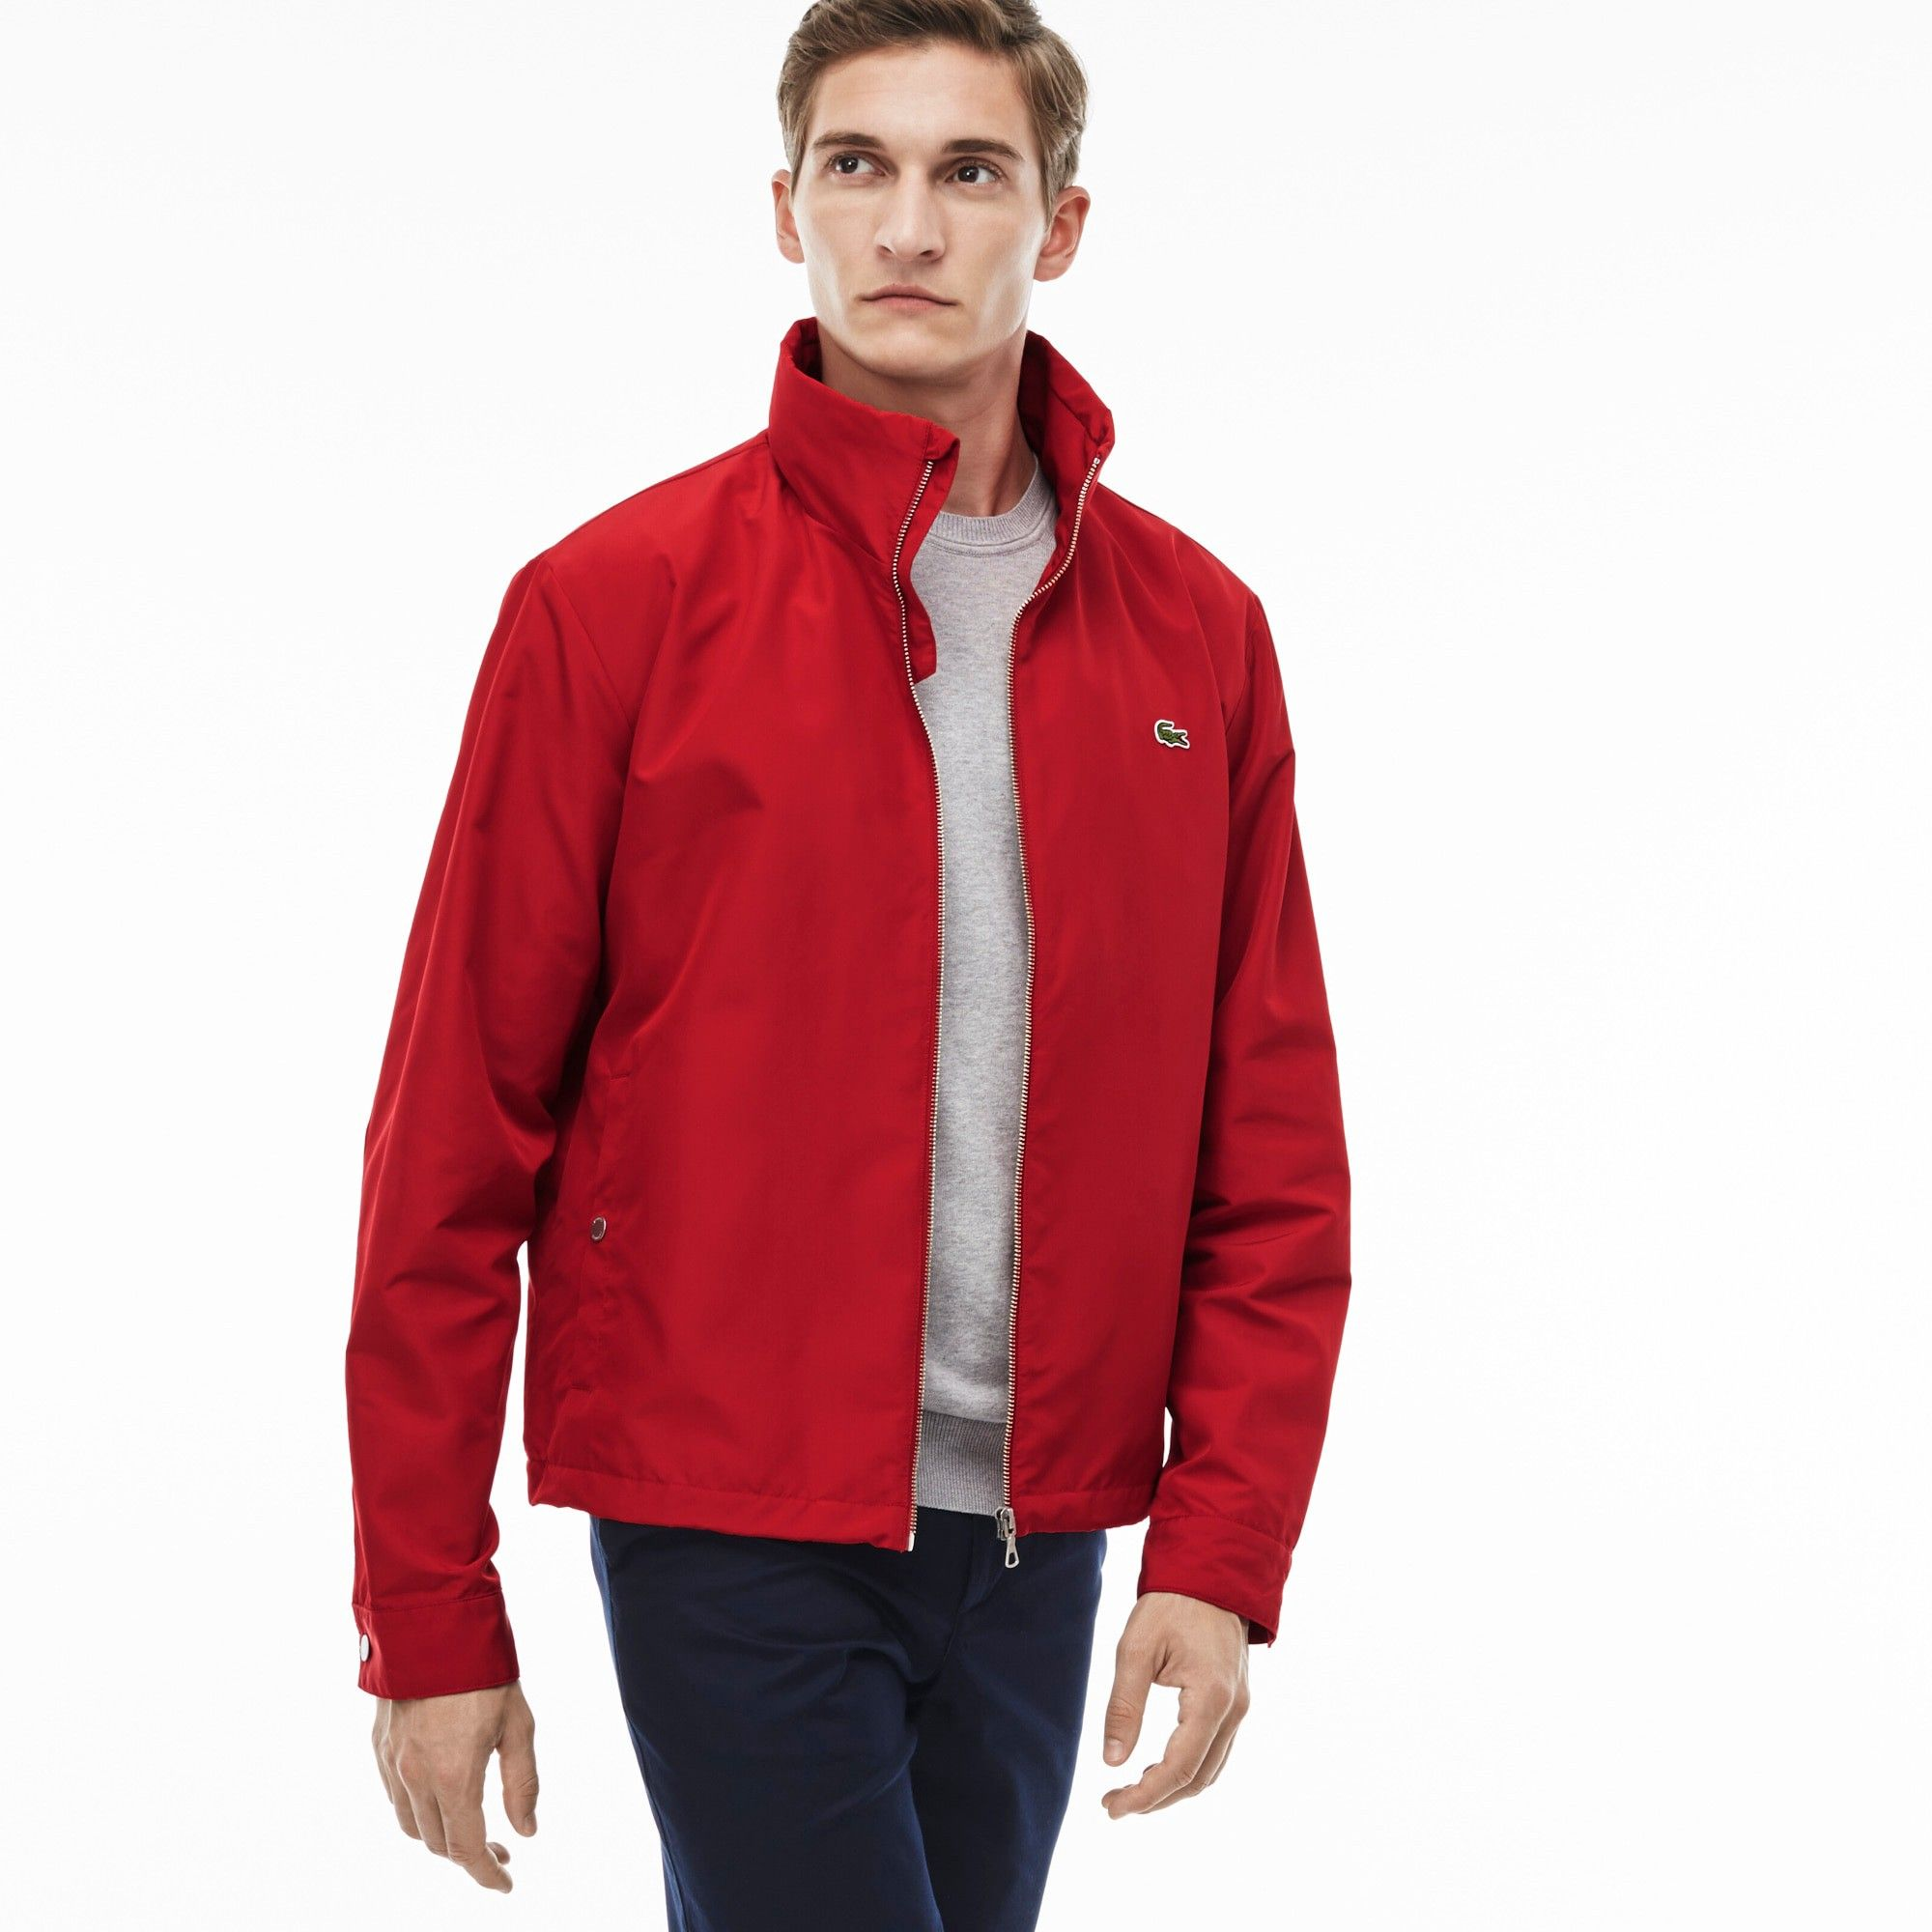 ed502dbef6 LACOSTE Men's Unicolor Nylon Contrasting Accents Hooded Zippered ...